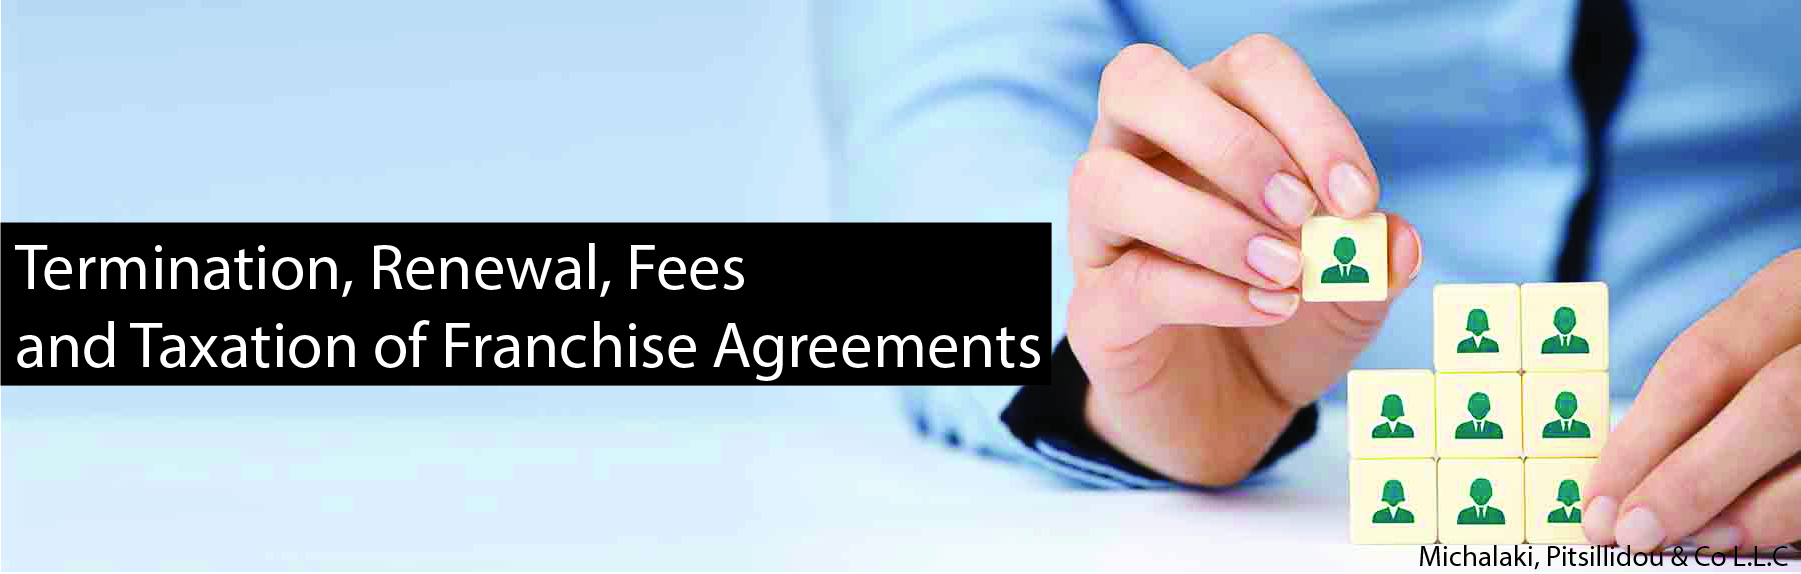 Termination Renewal Fees And Taxation Of Franchise Agreements